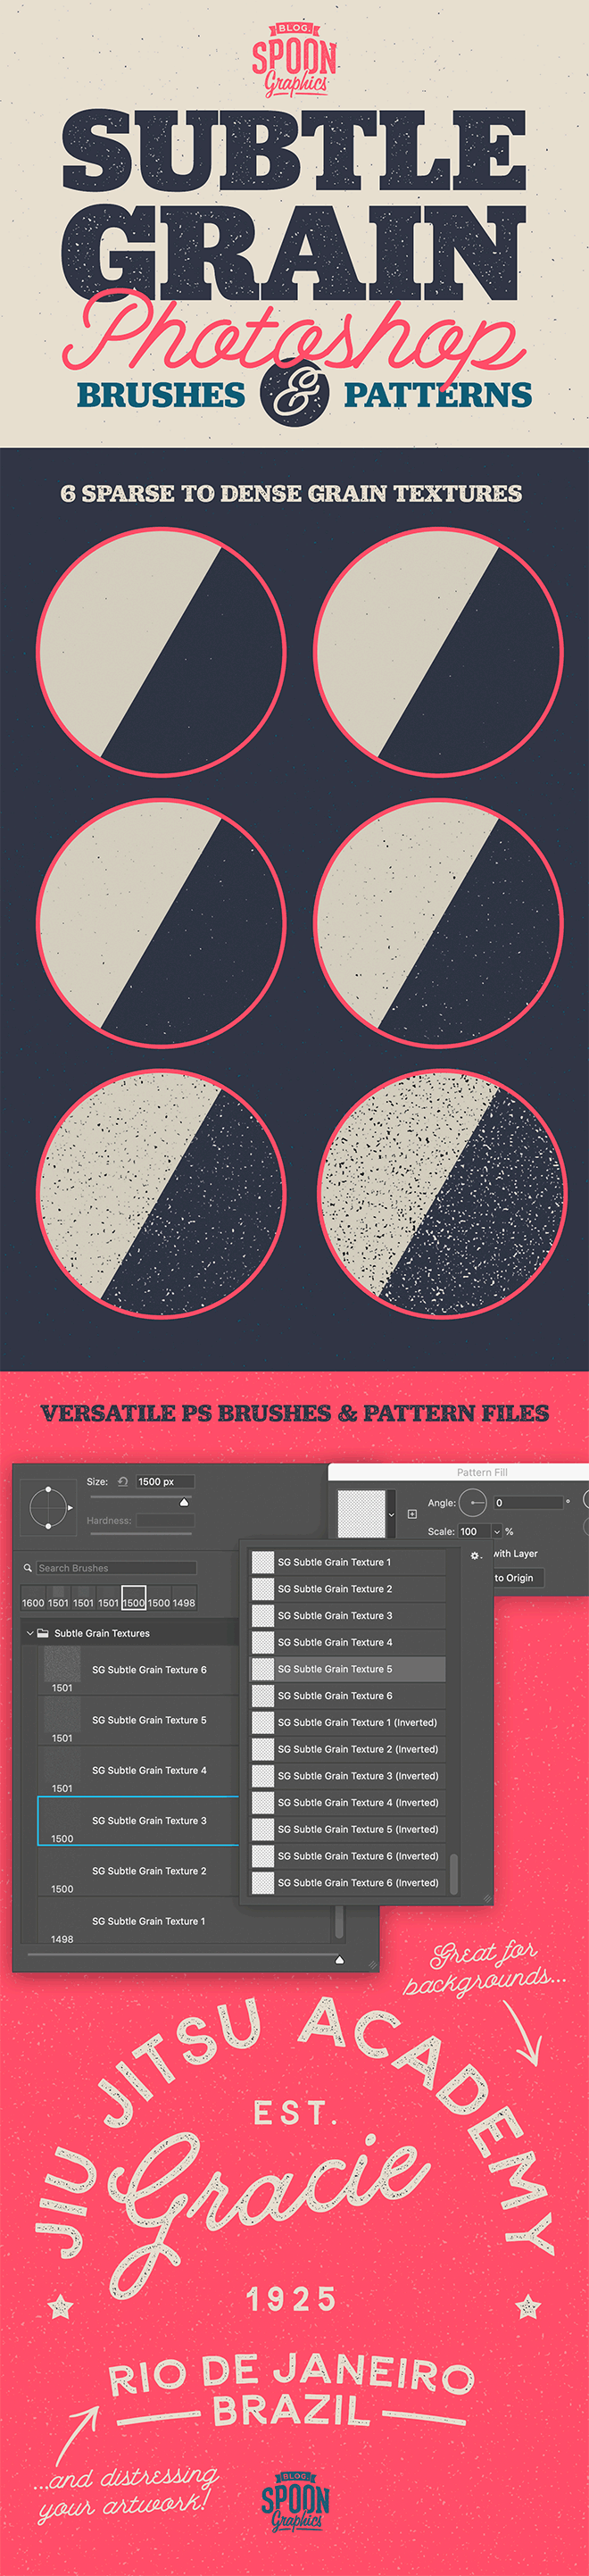 Free Subtle Grain Photoshop Brushes and Patterns